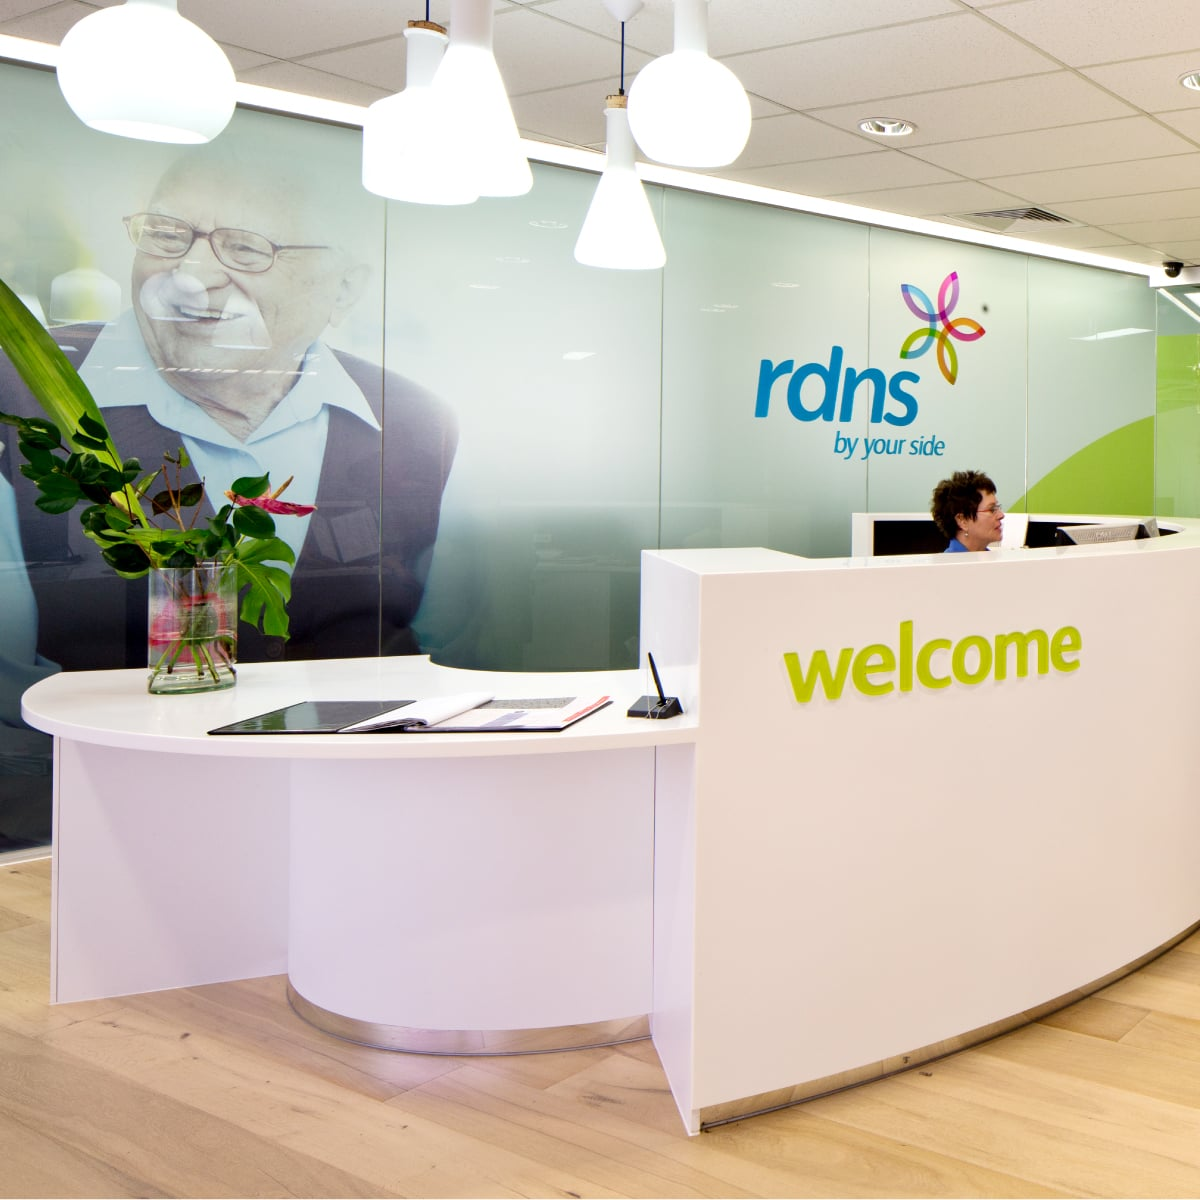 Davidson Branding Corporate Royal District Nursing Service RDNS Brand Identity Visual Language Wall Graphics Signage